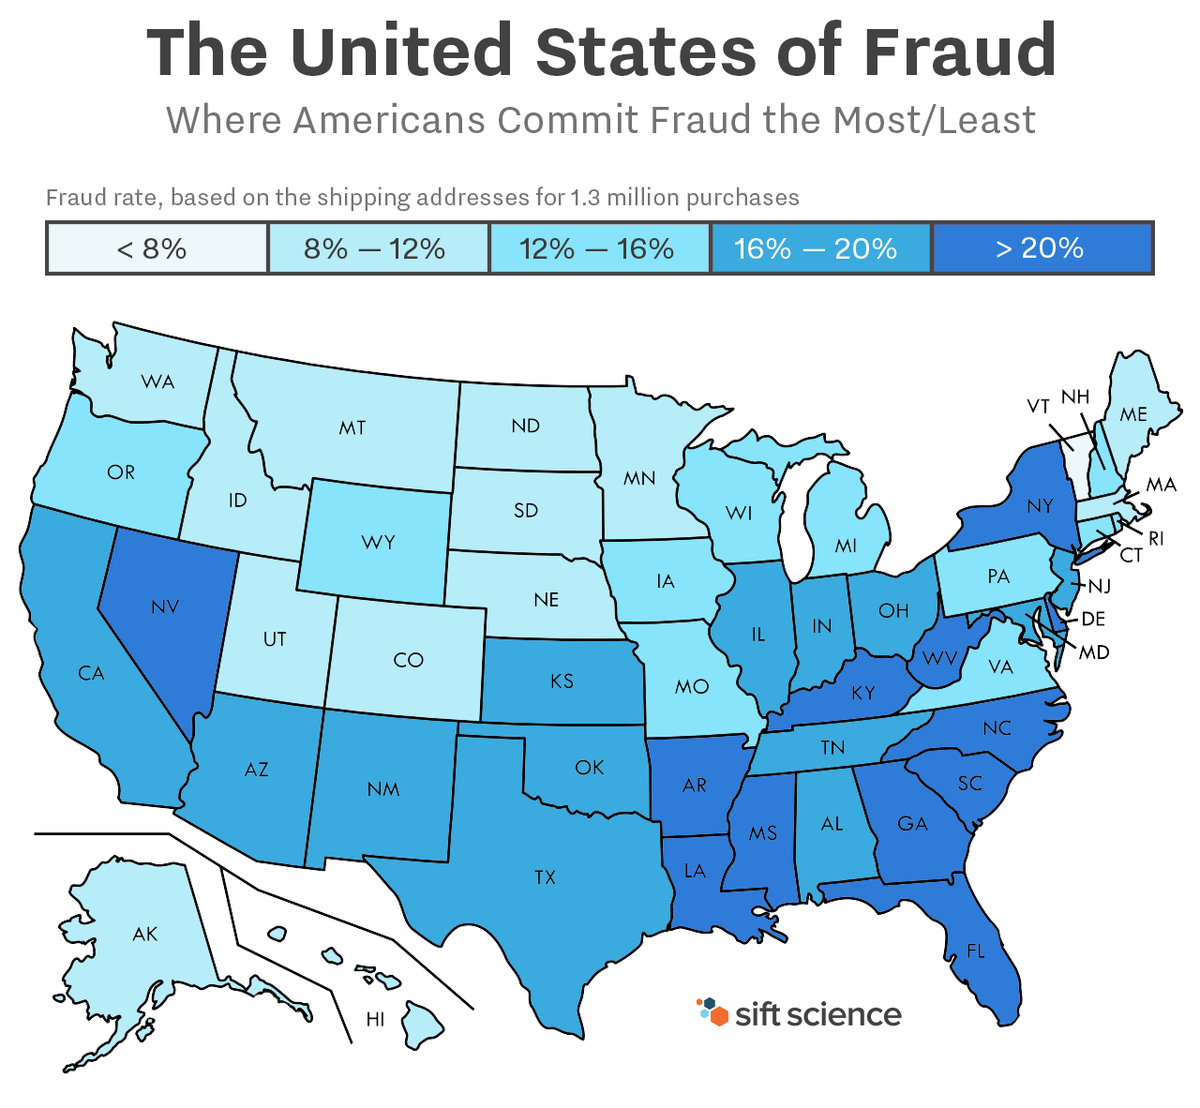 Fraud by state